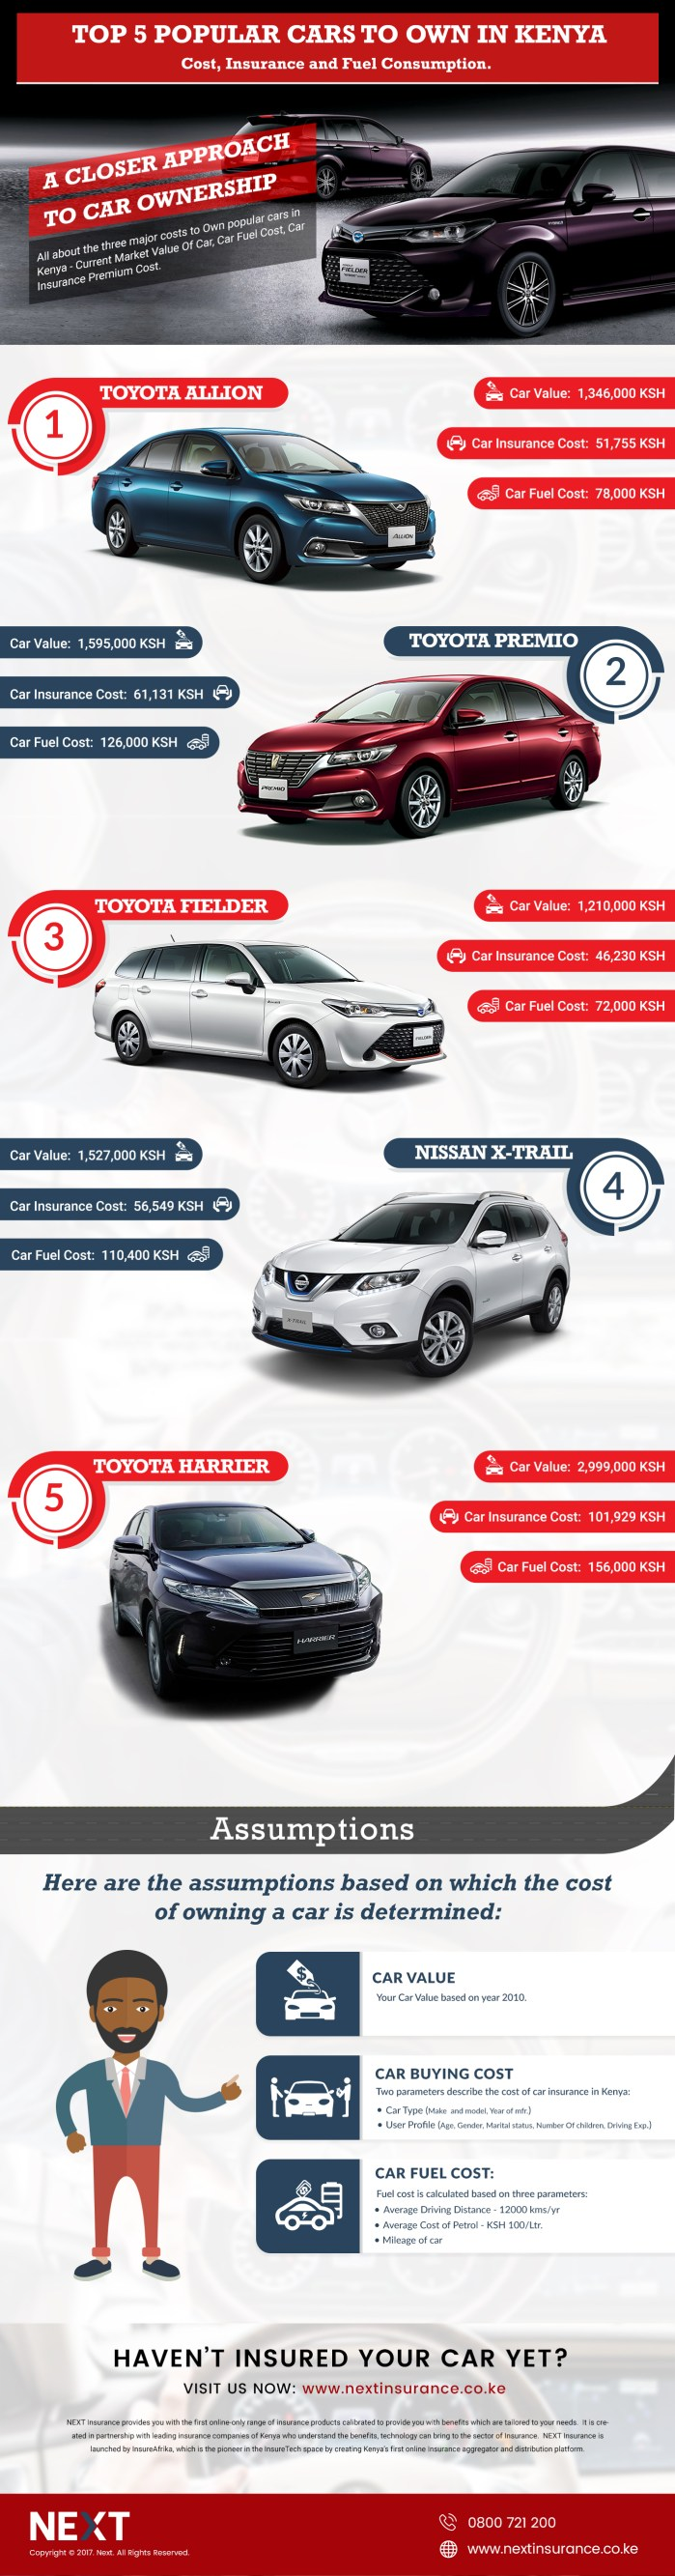 Car Ownership Cost For Popular Cars In Kenya - Series 1 (Infographic)